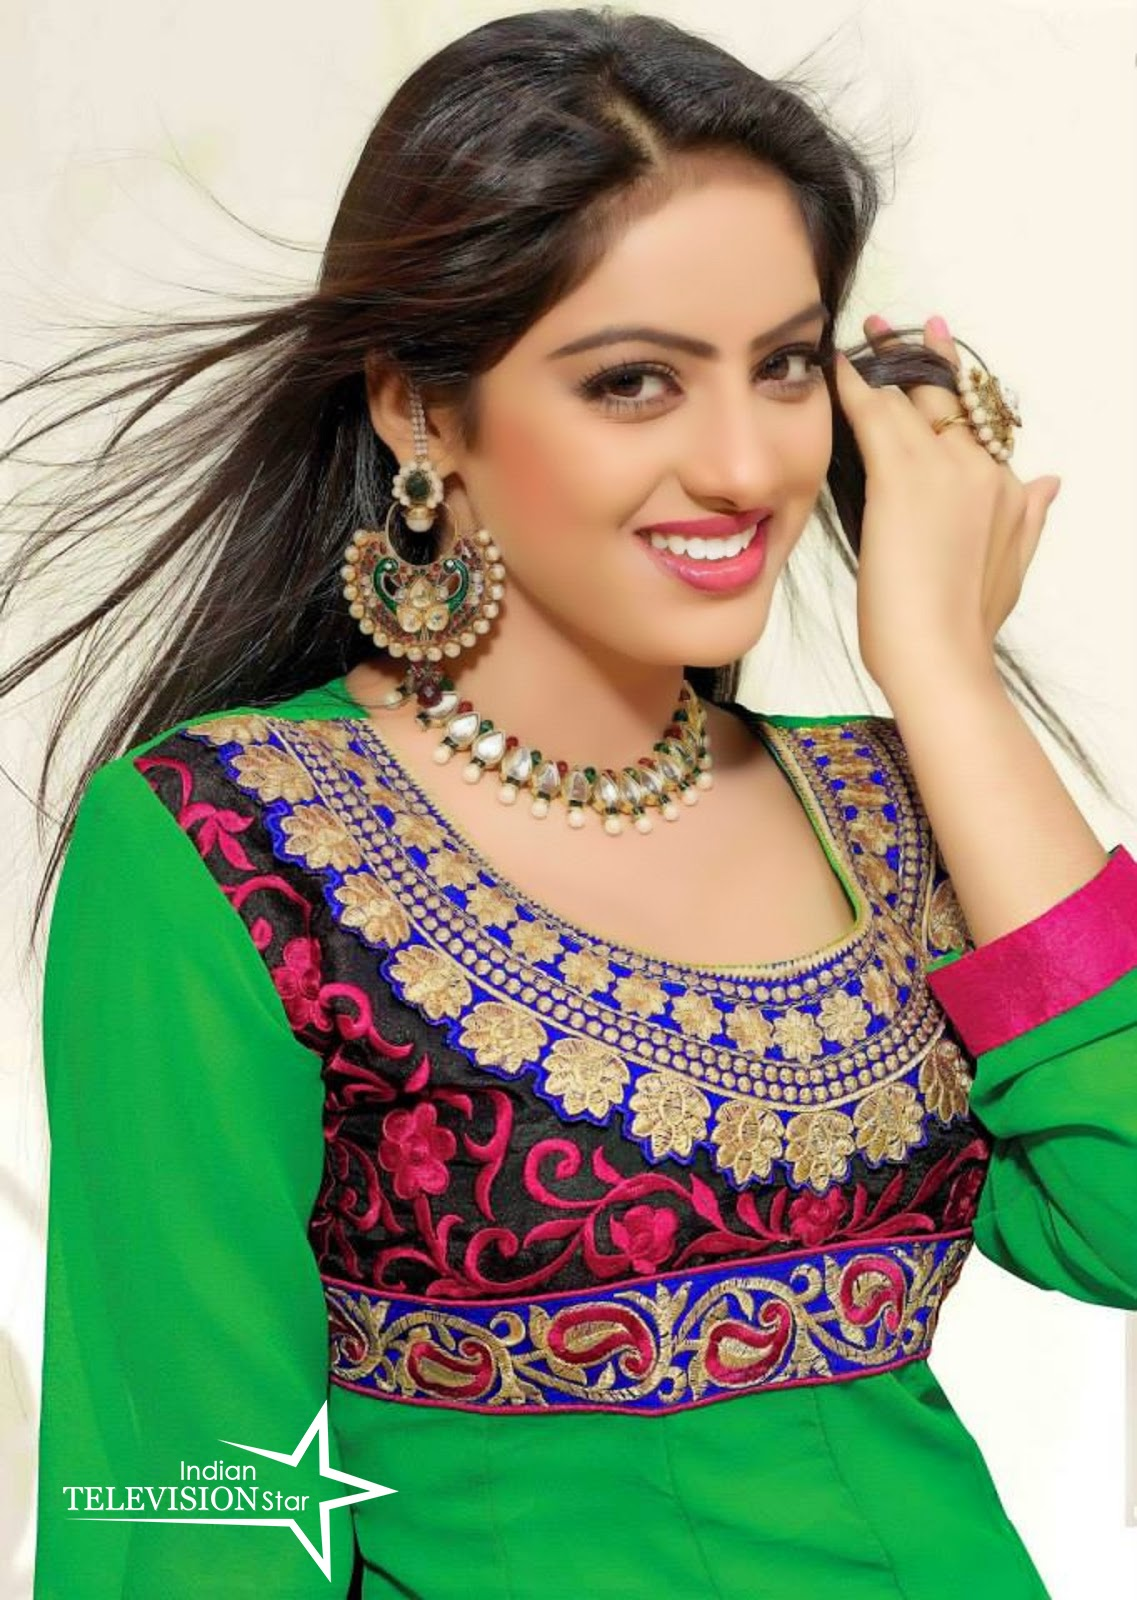 Indian Television Star Deepika Singh Indian Television -6546